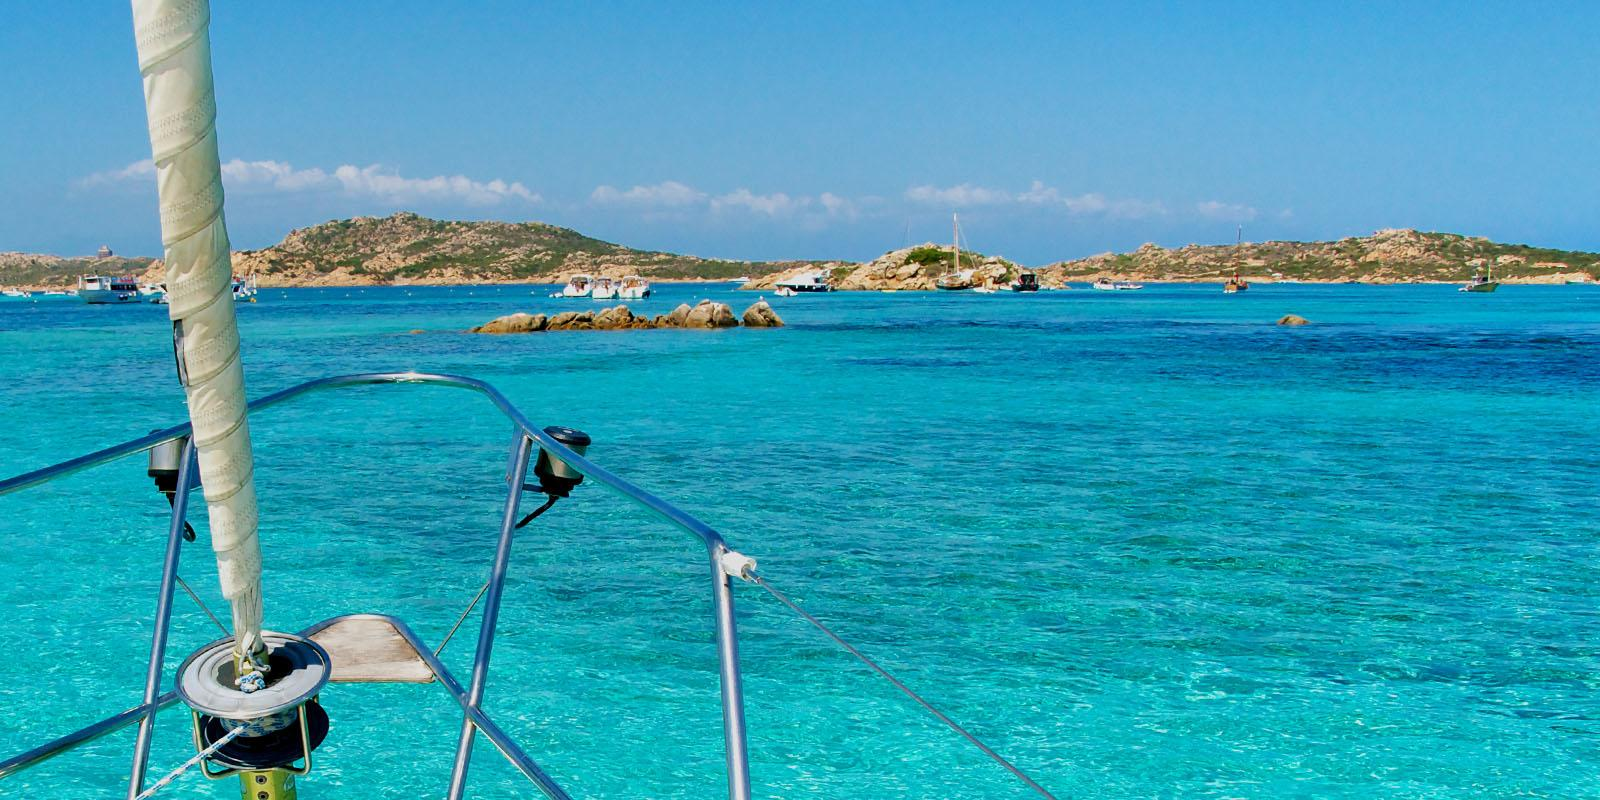 The Cyclades on a magnificent 15-meter boat